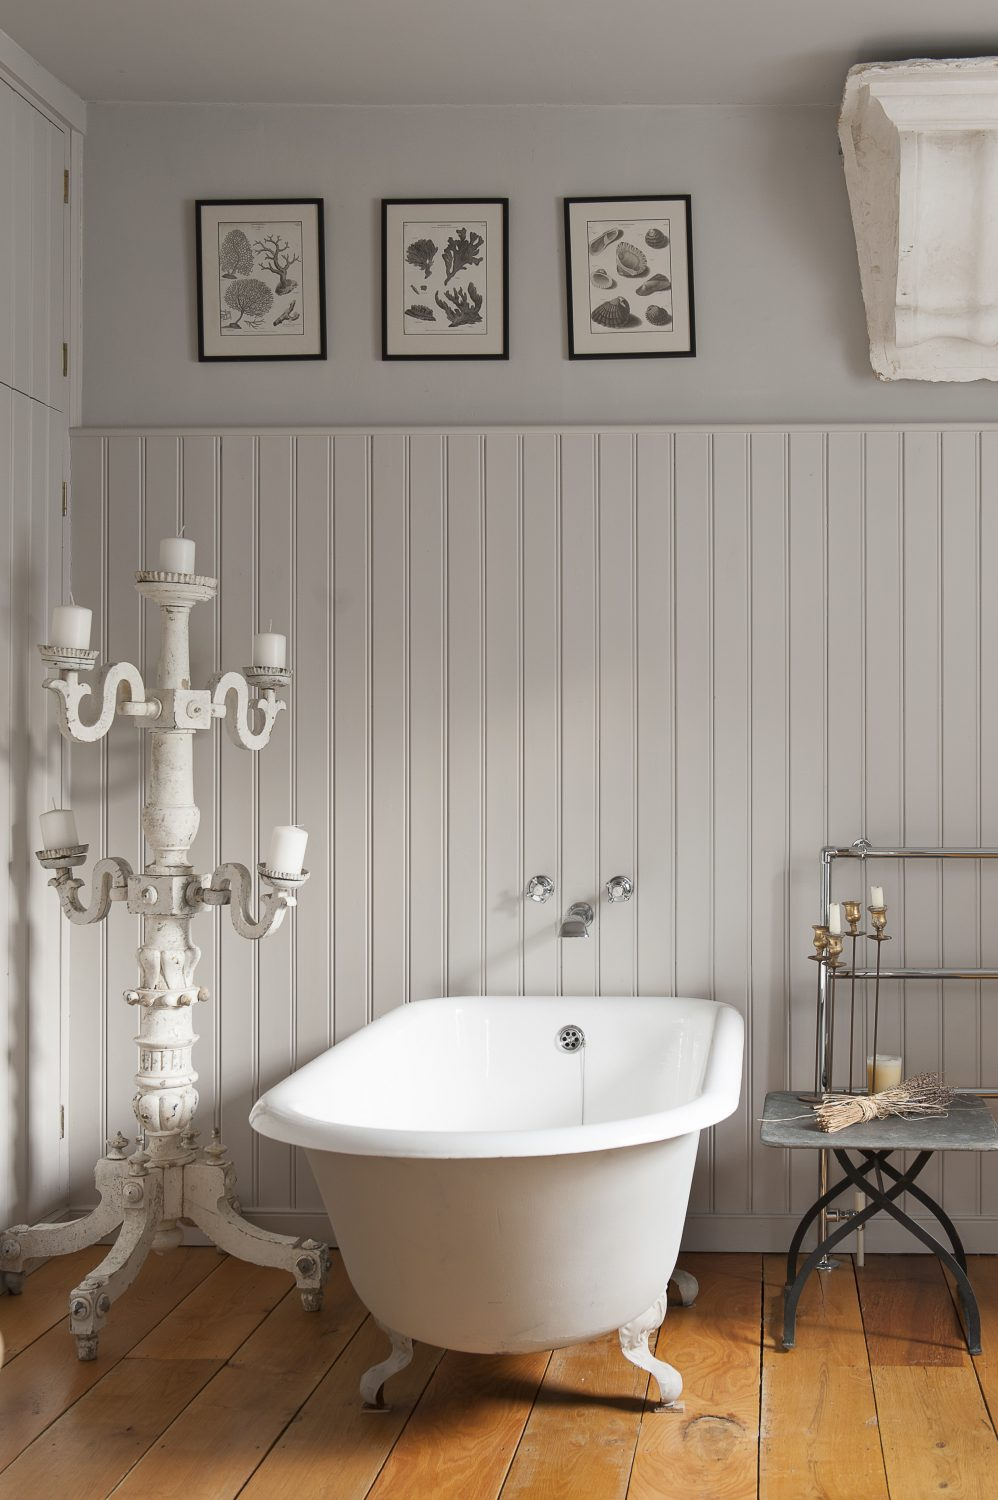 The en suite bathroom features a roll top bath and tongue and groove walls. The 'Whistle' sign on the wall is from an old railway station